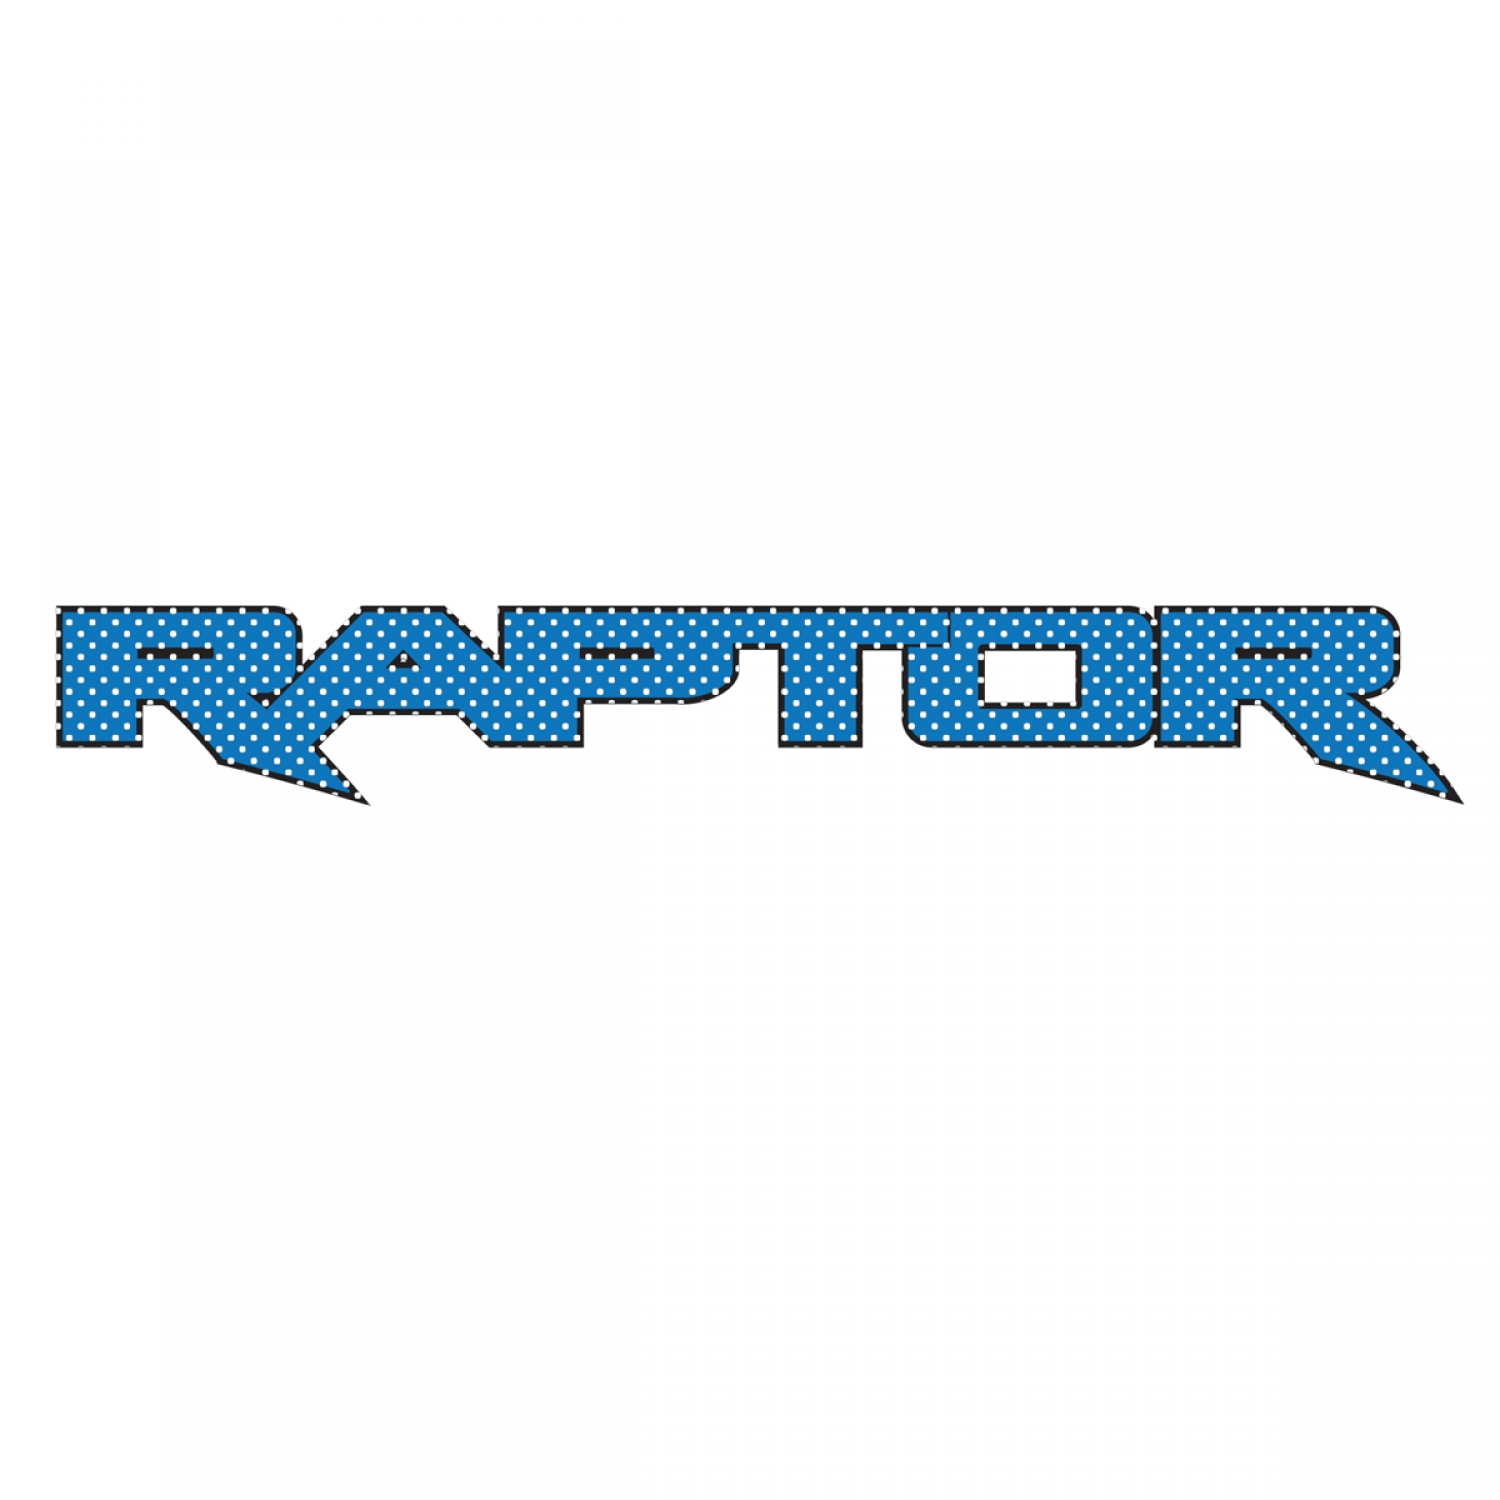 "Ford F150 Raptor 2017 up in Blue 12"" 3M Perforated Unobstructed View Window Graphic Decorative Decal"